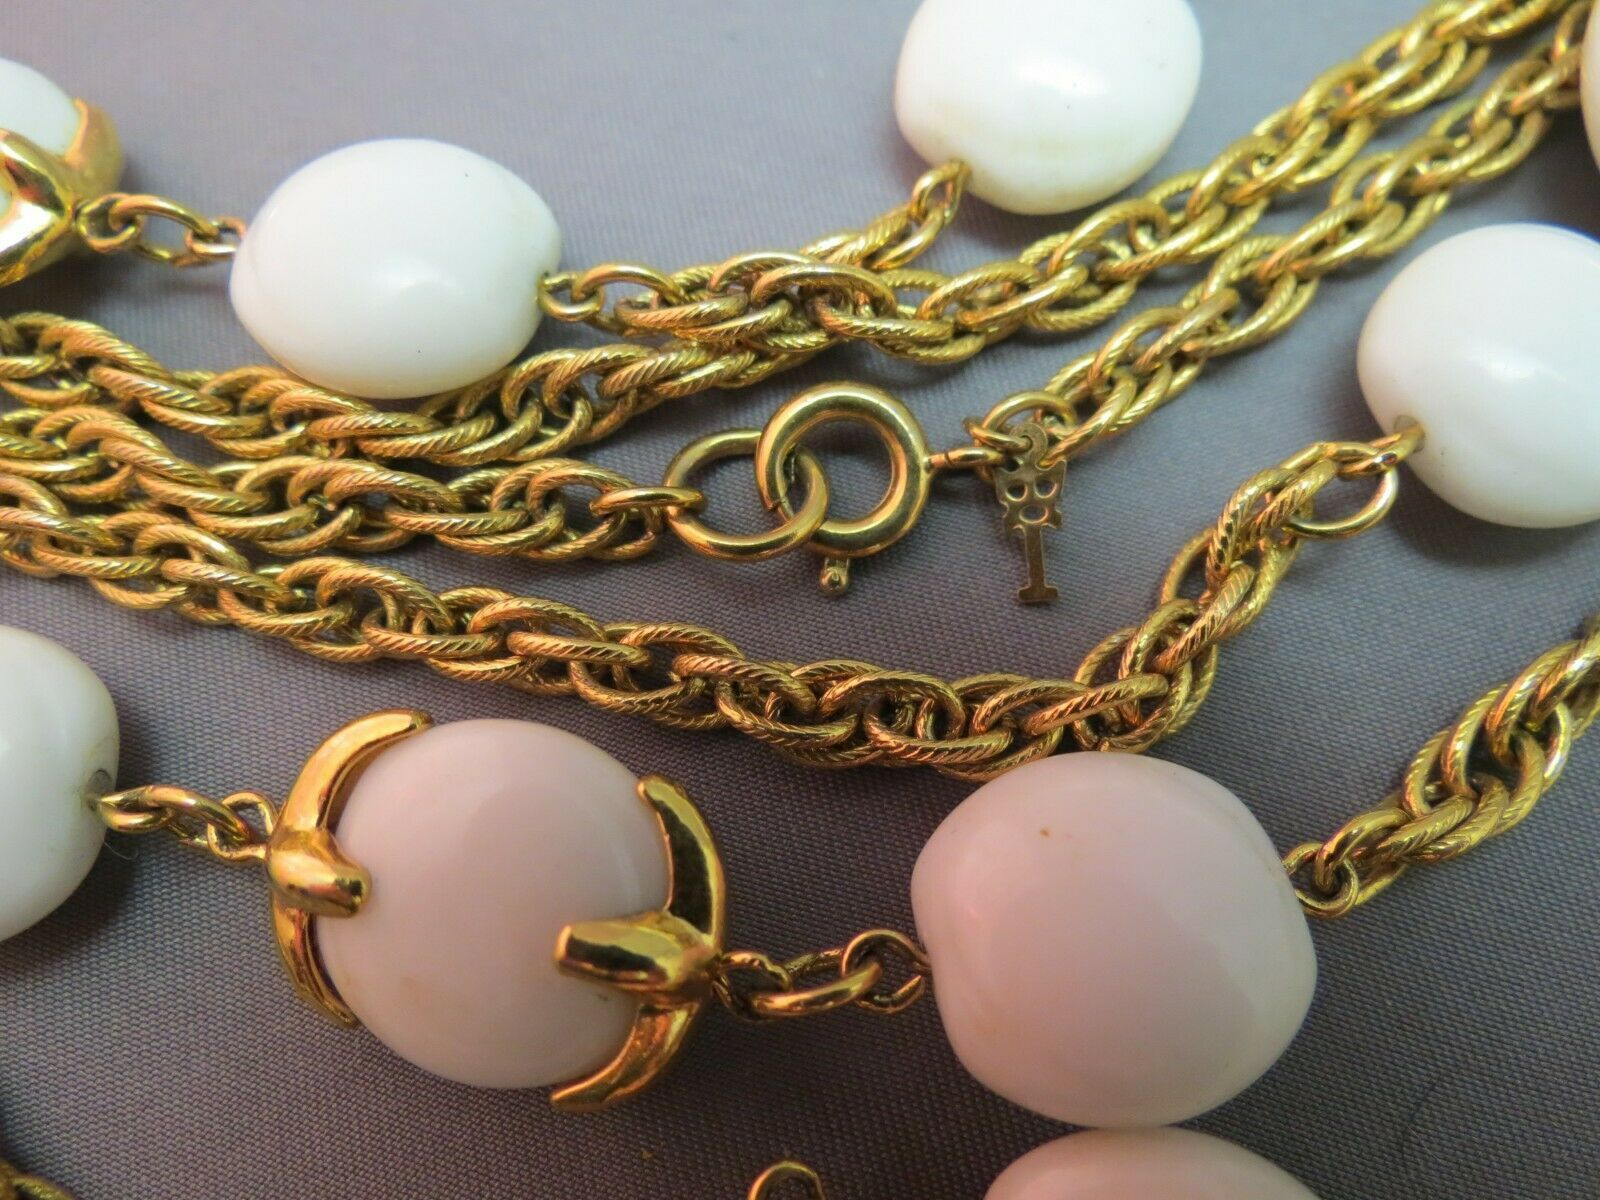 """VTG Crown Trifari Long Necklace Chain Gold Plated Glass Beads Couture 54"""" Long image 3"""